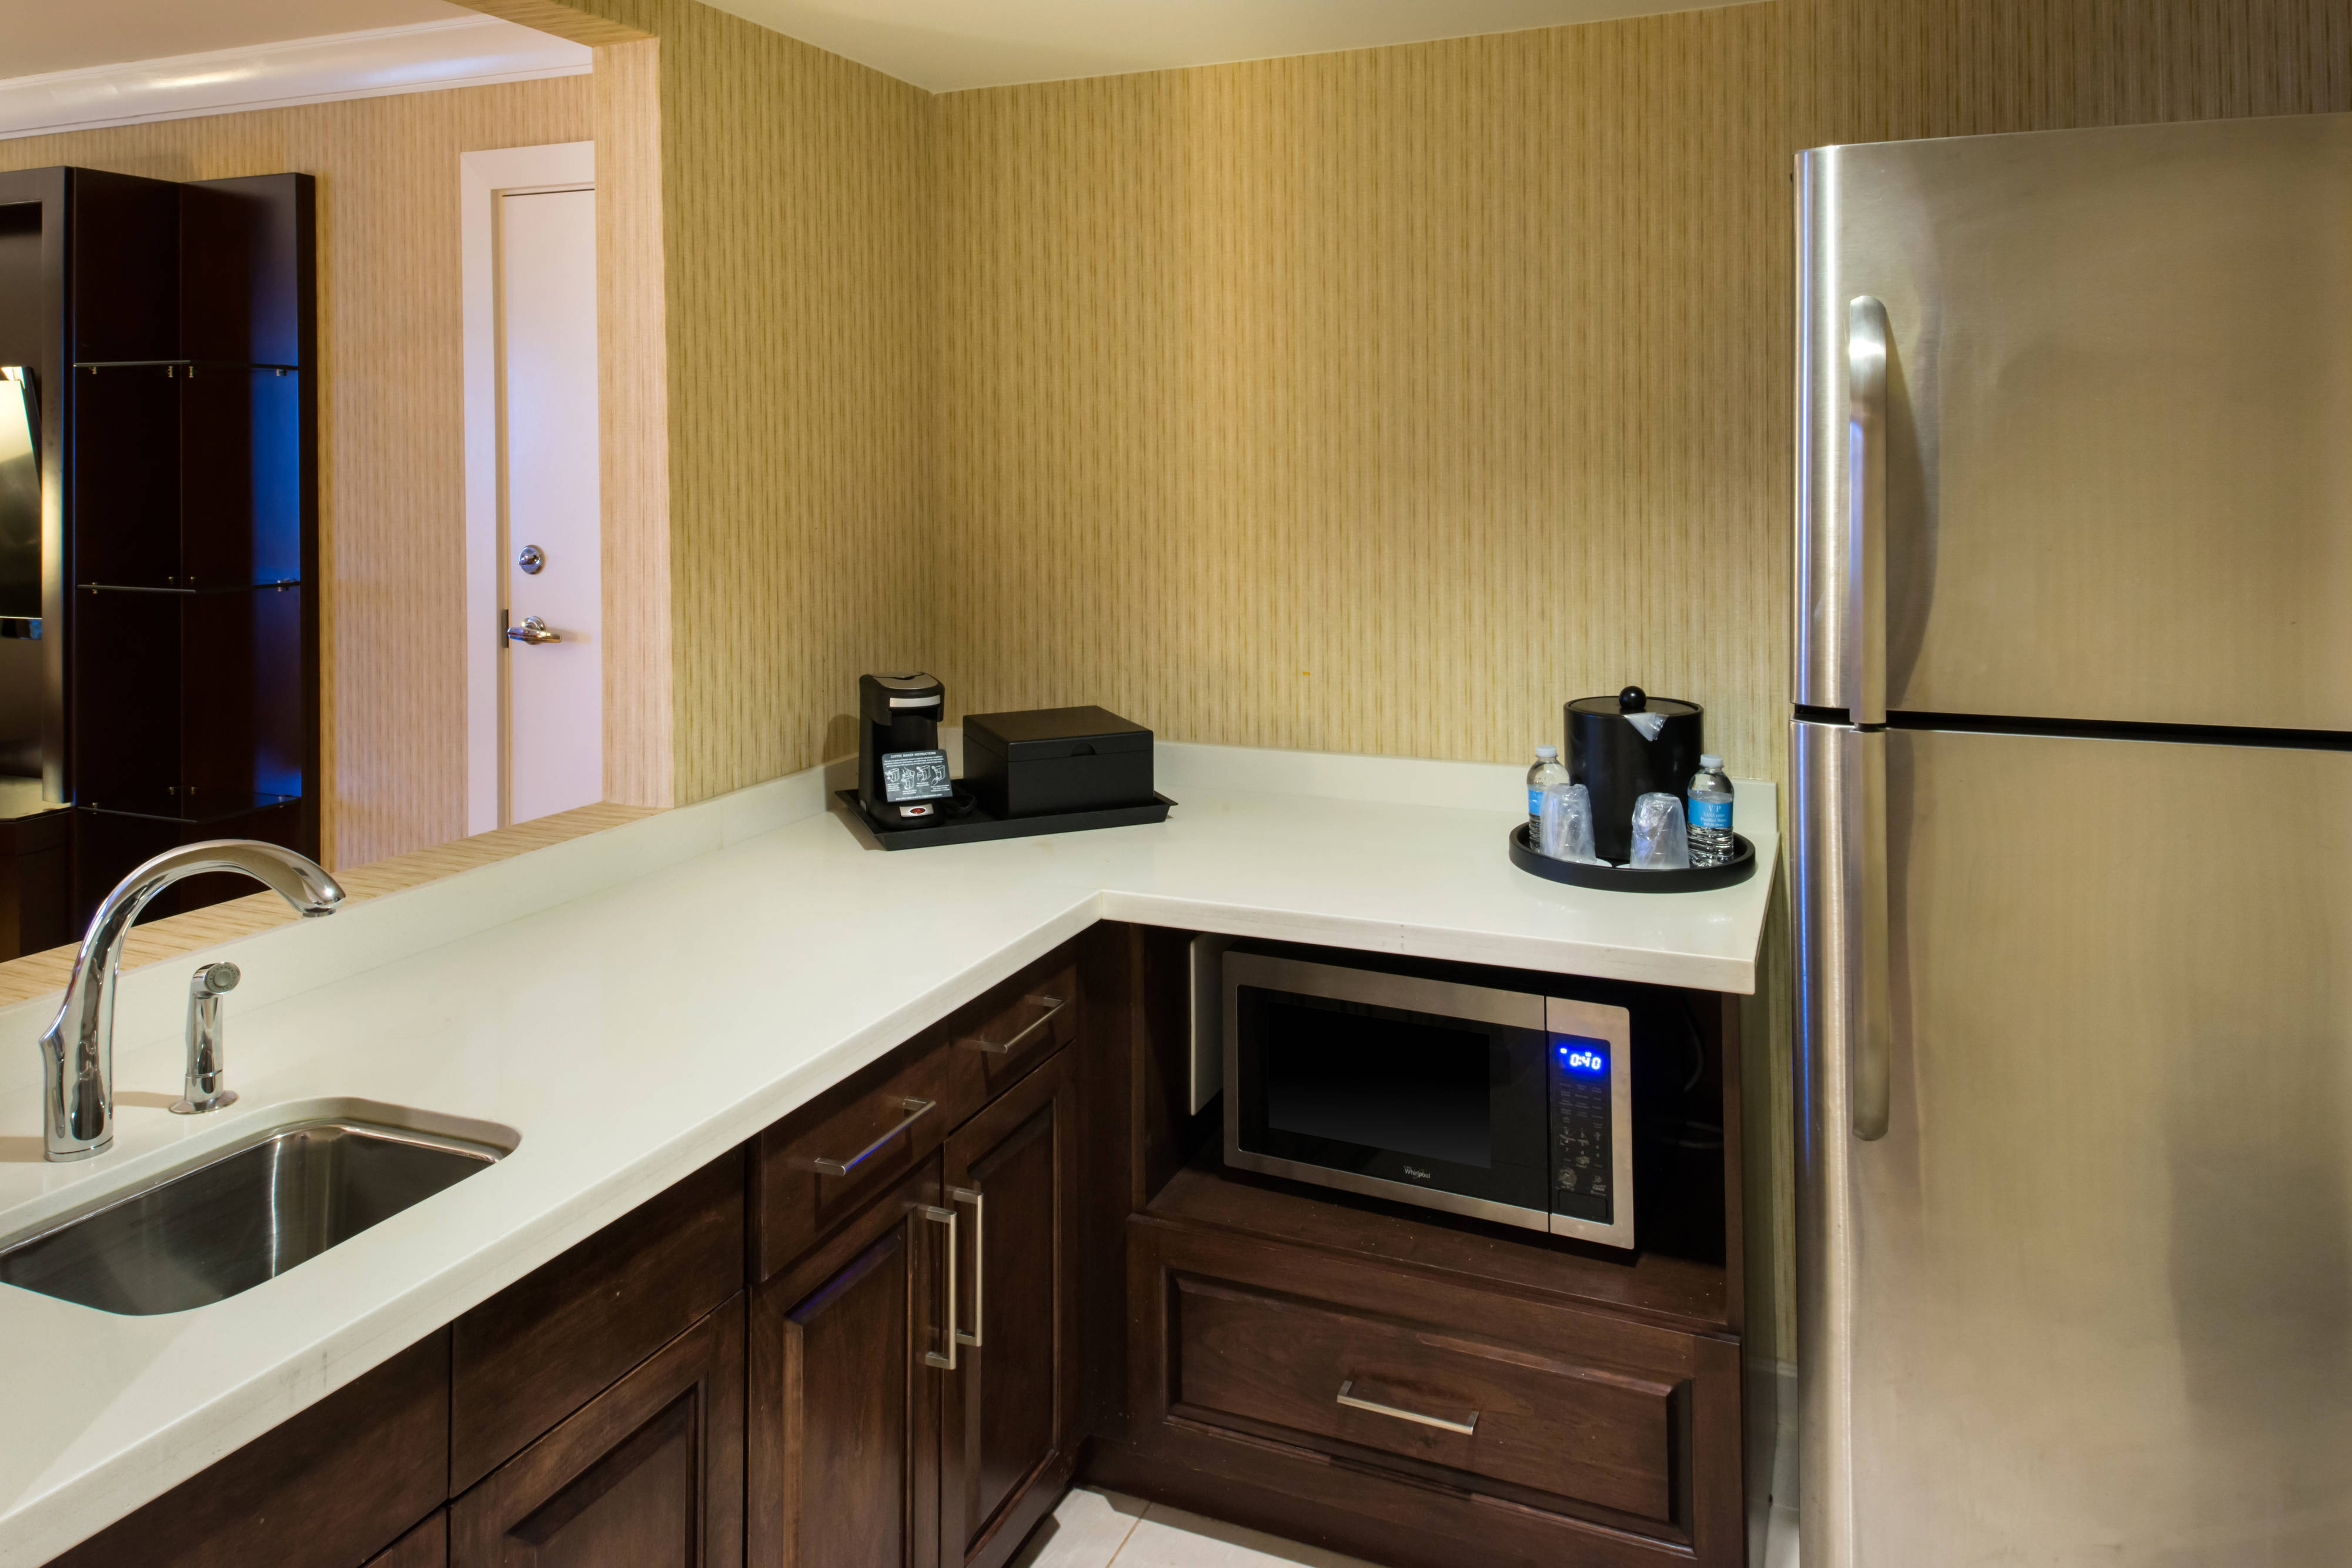 memphis hotel room with kitchenette